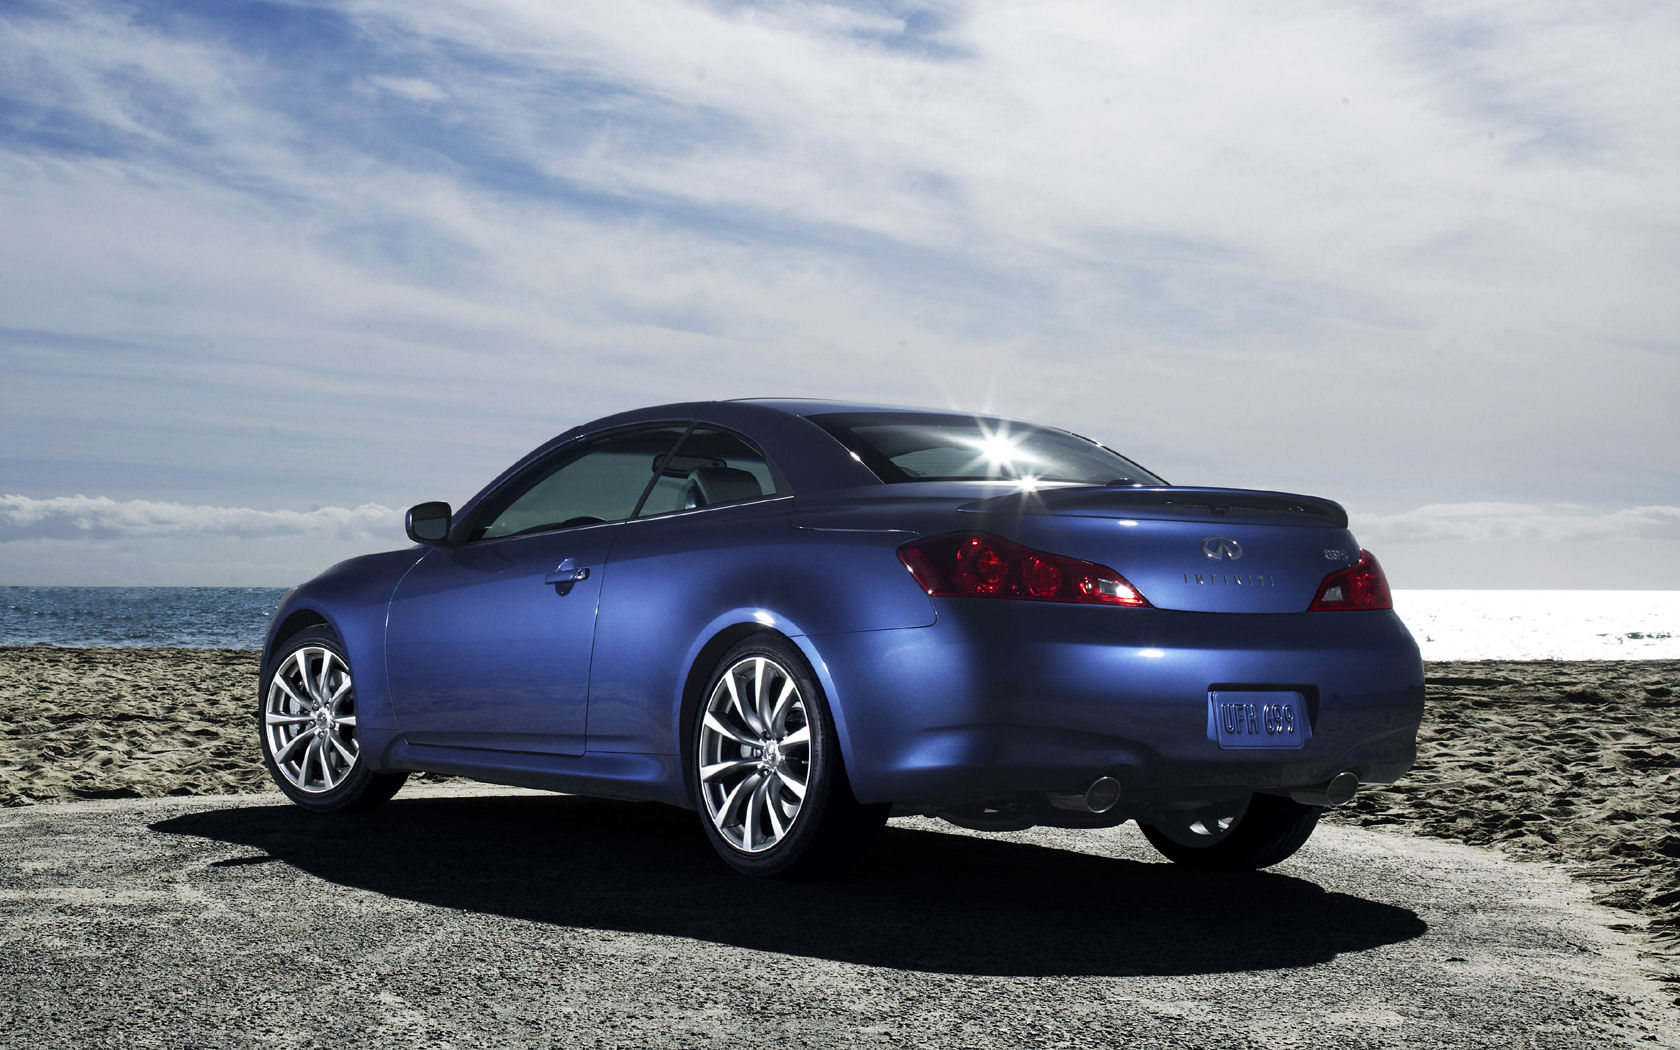 Infiniti G35 Coupe Wallpapers